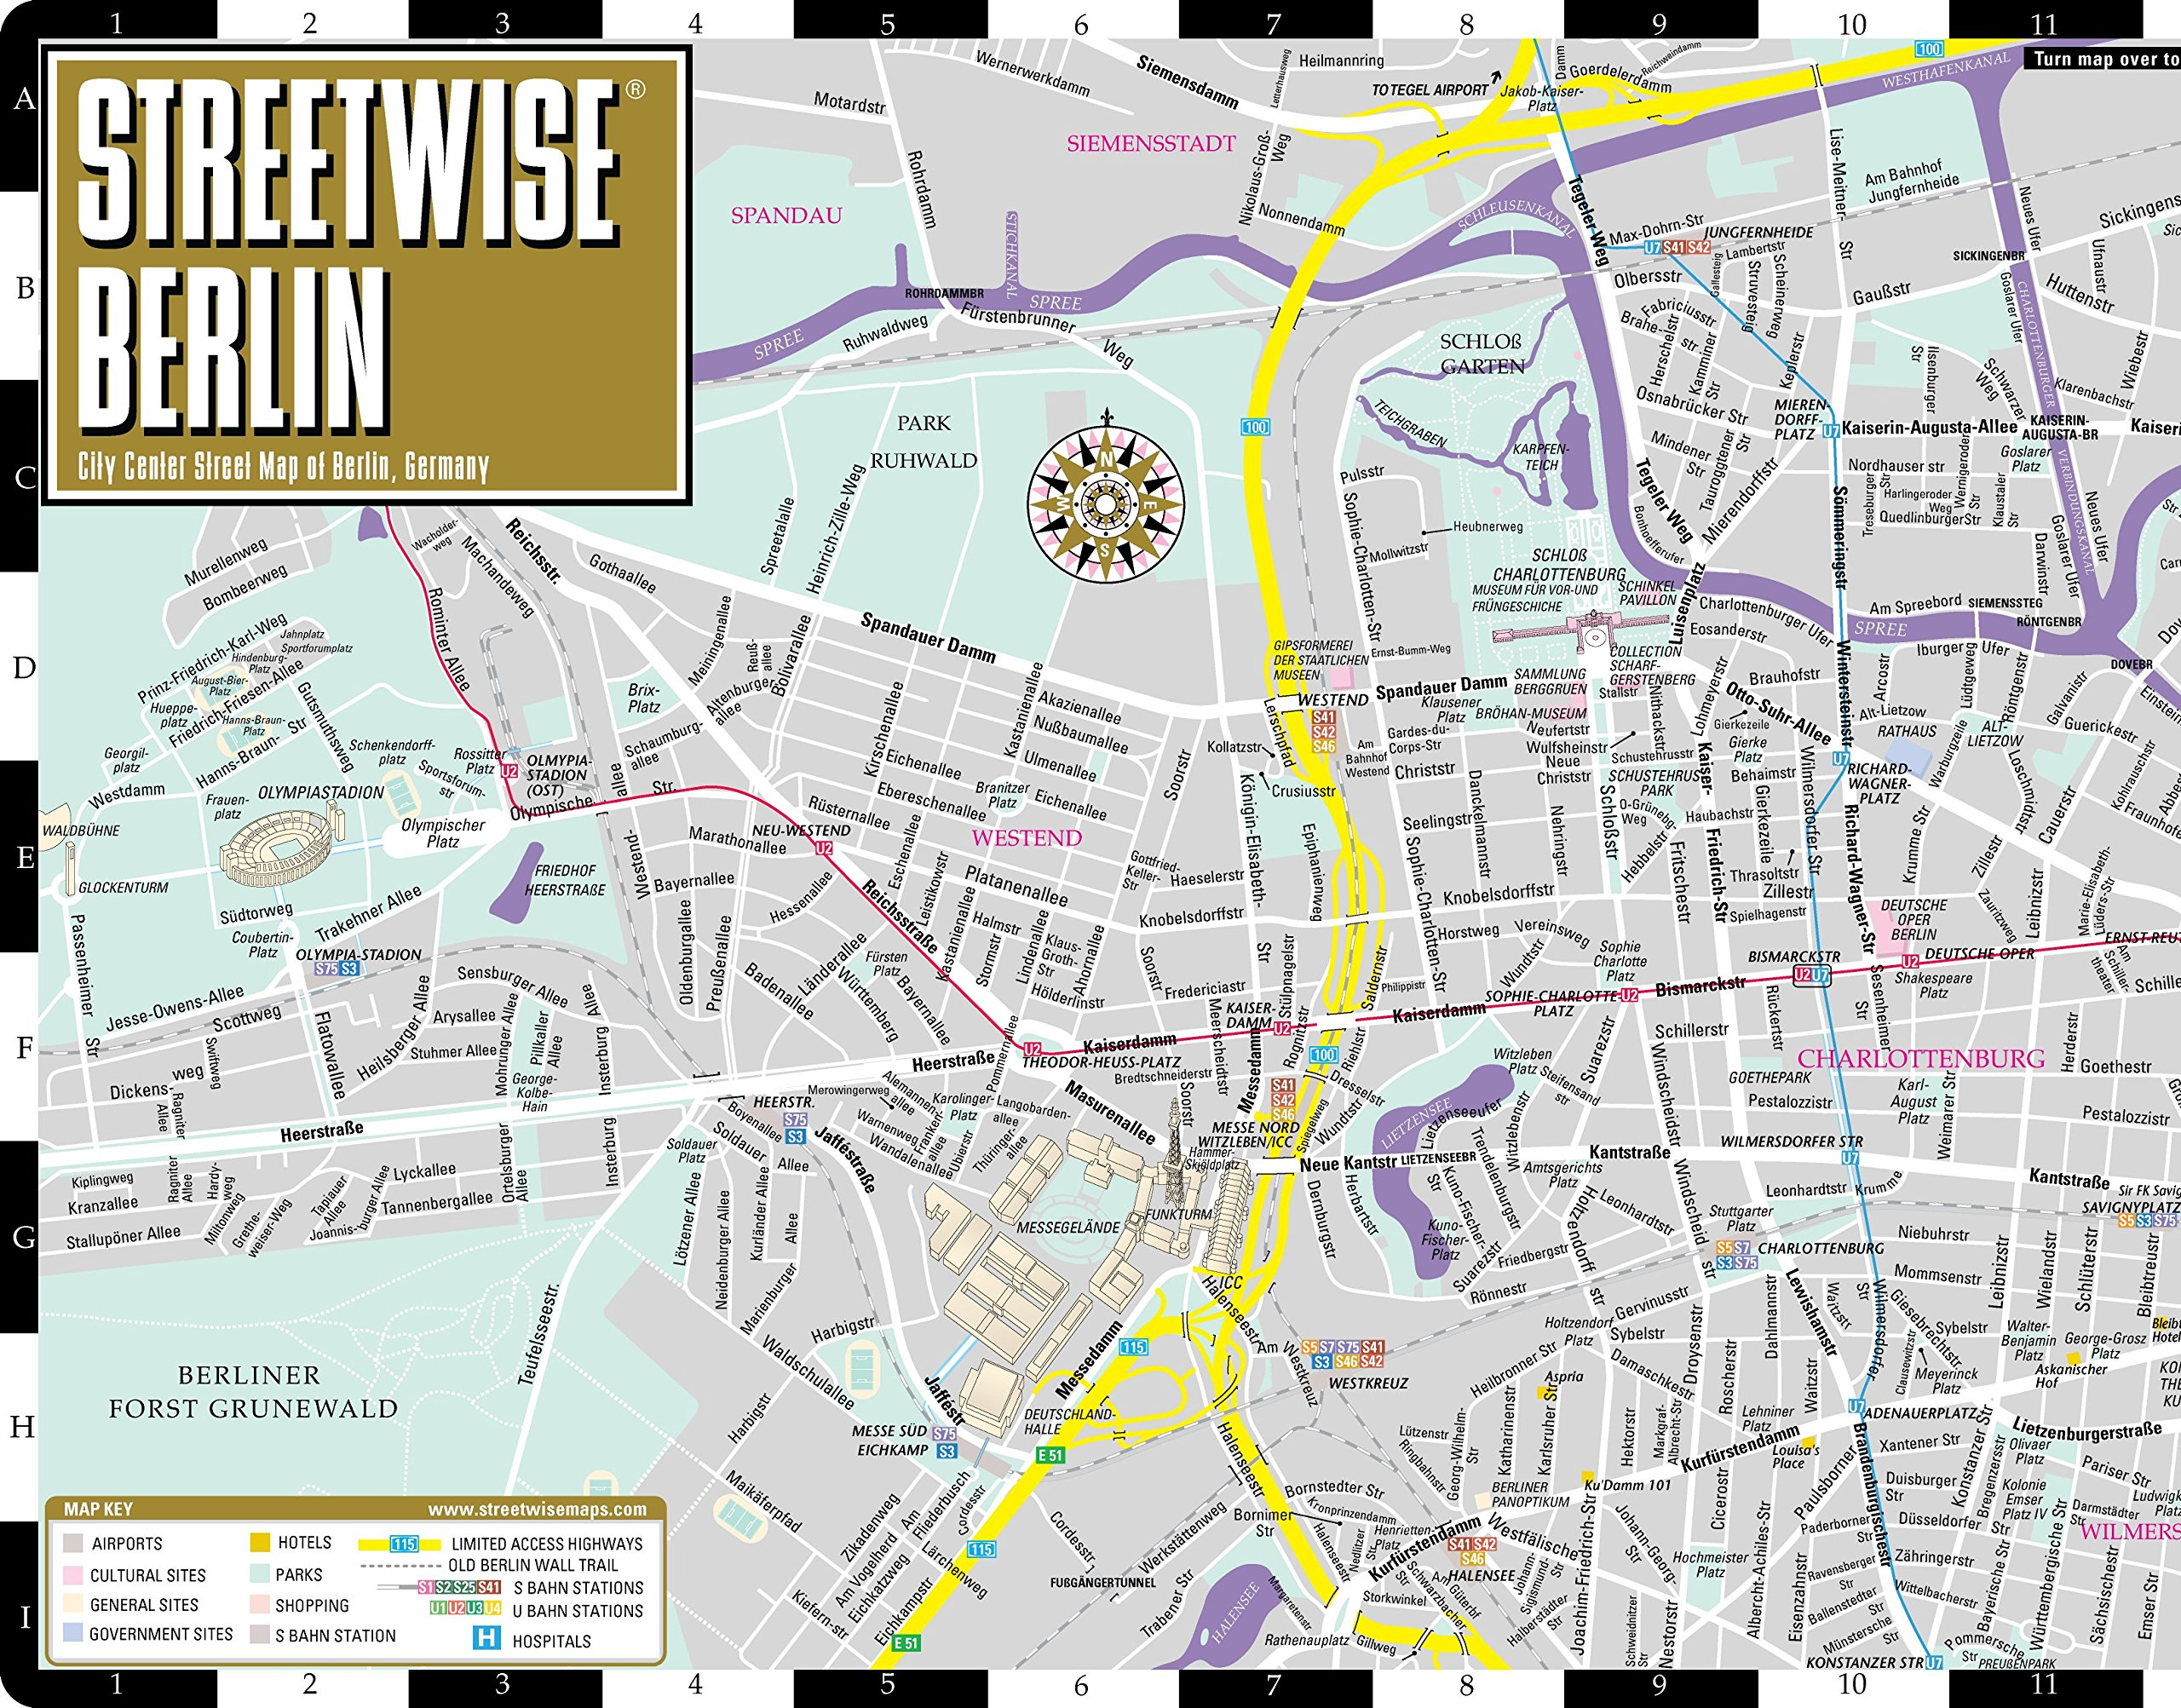 Streetwise Berlin Map Laminated City Center Street Map Of Berlin - Berlin map hotels